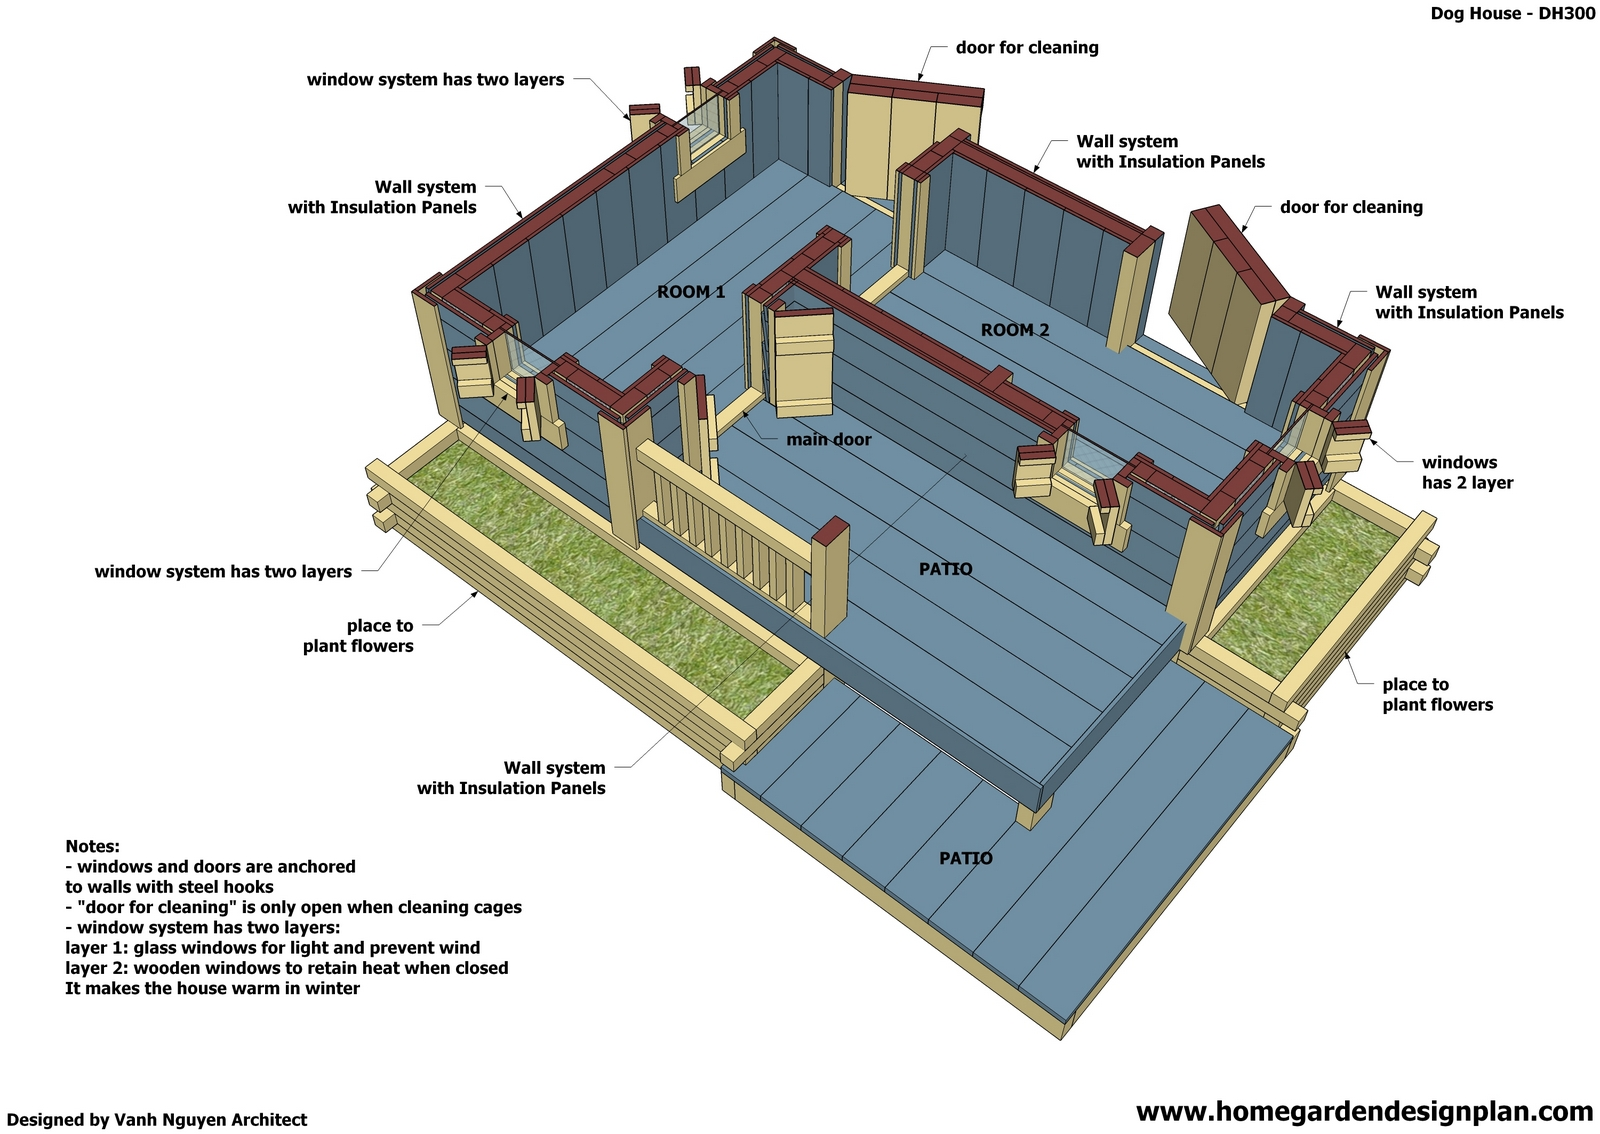 Home garden plans dh300 dog house plans free how to for Dog kennel floor plans